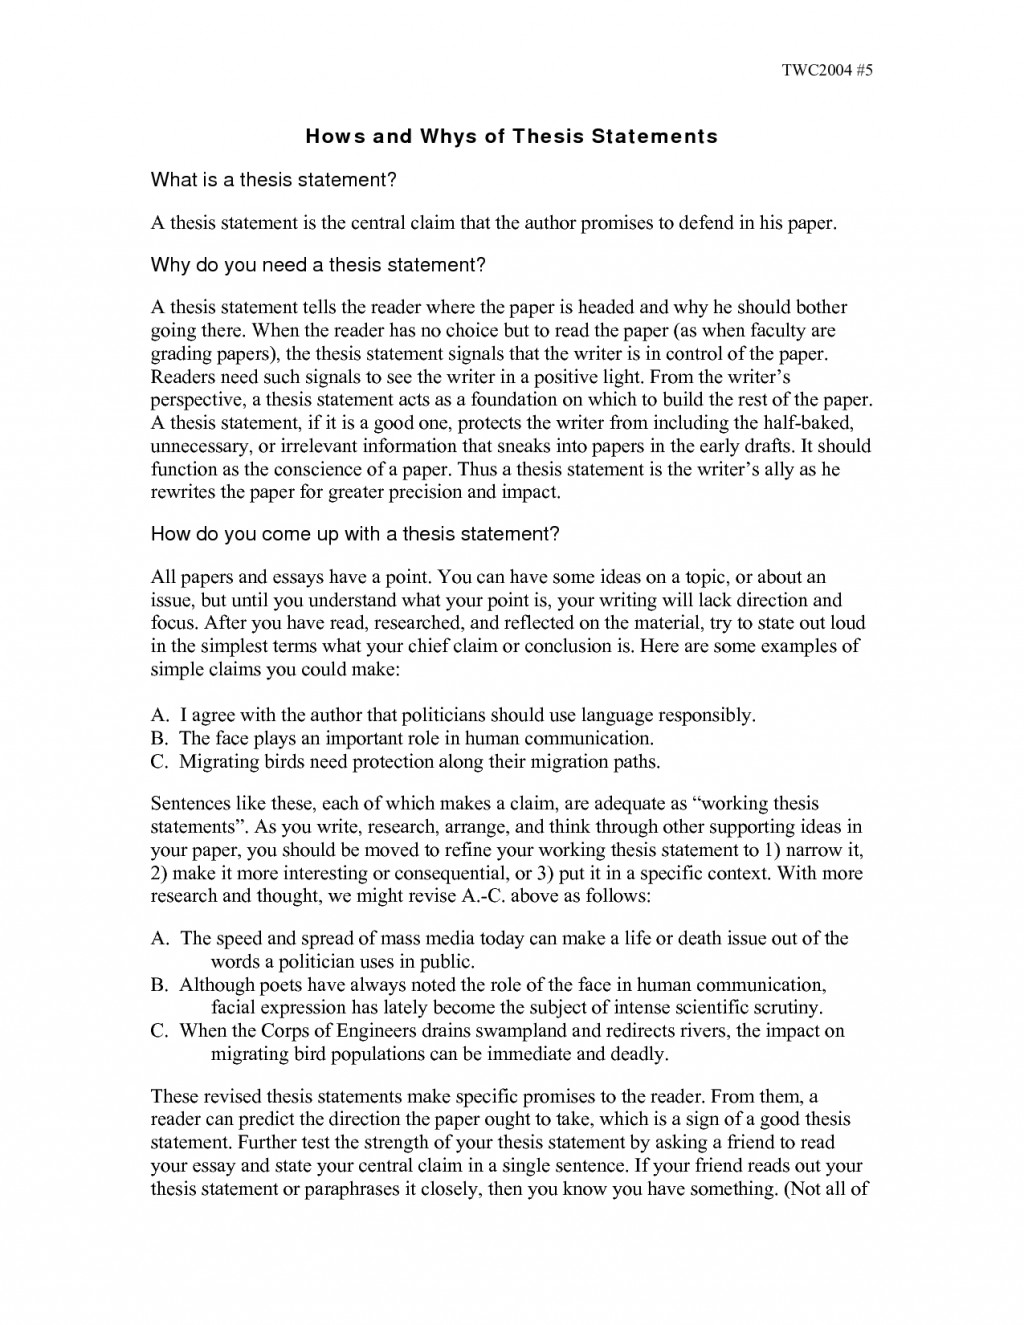 005 How To Write Good Apa Research Paper Unique A Psychology Outline Do You Large